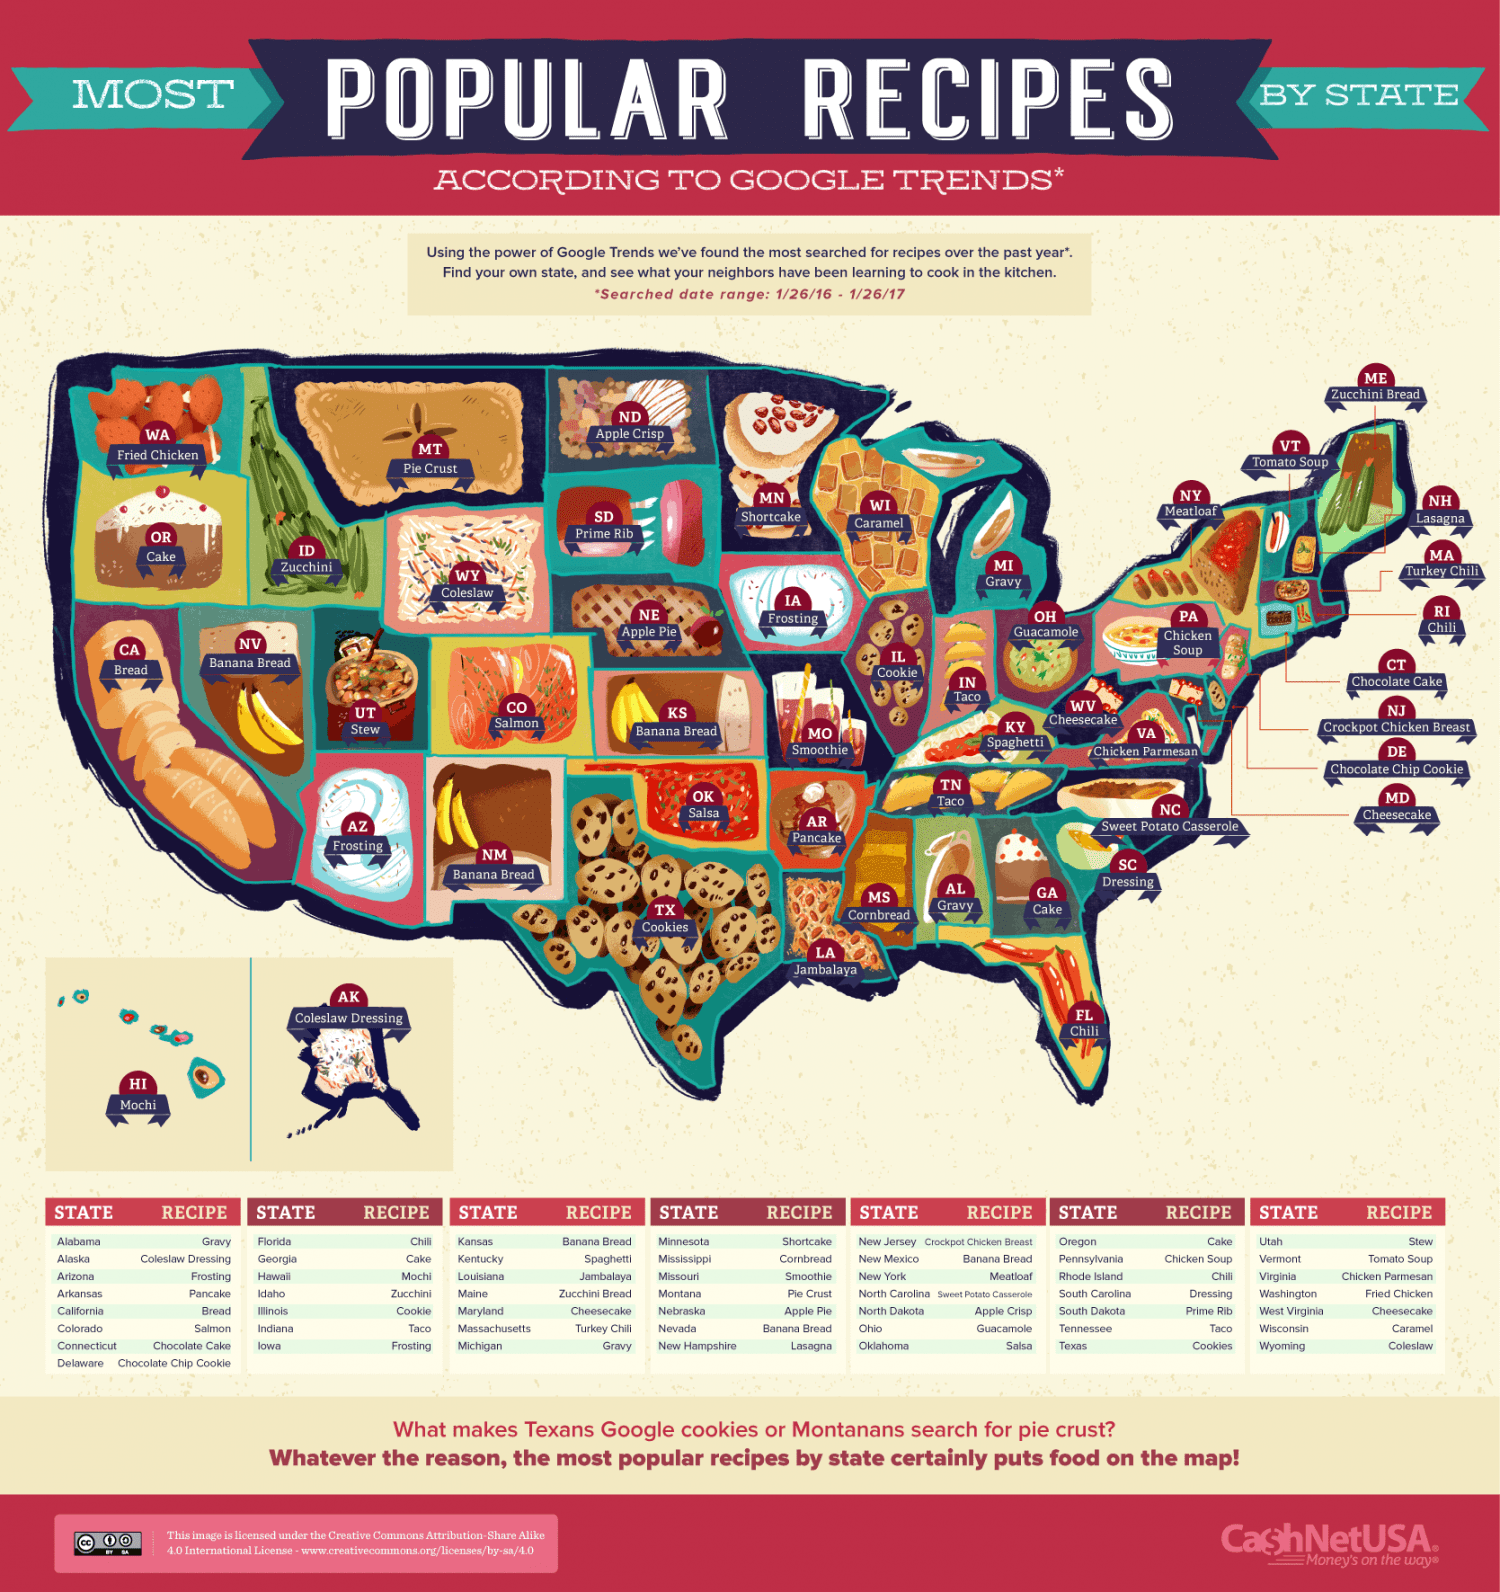 most-popular-recipes-by-state_58d4462dda7c6_w1500.png